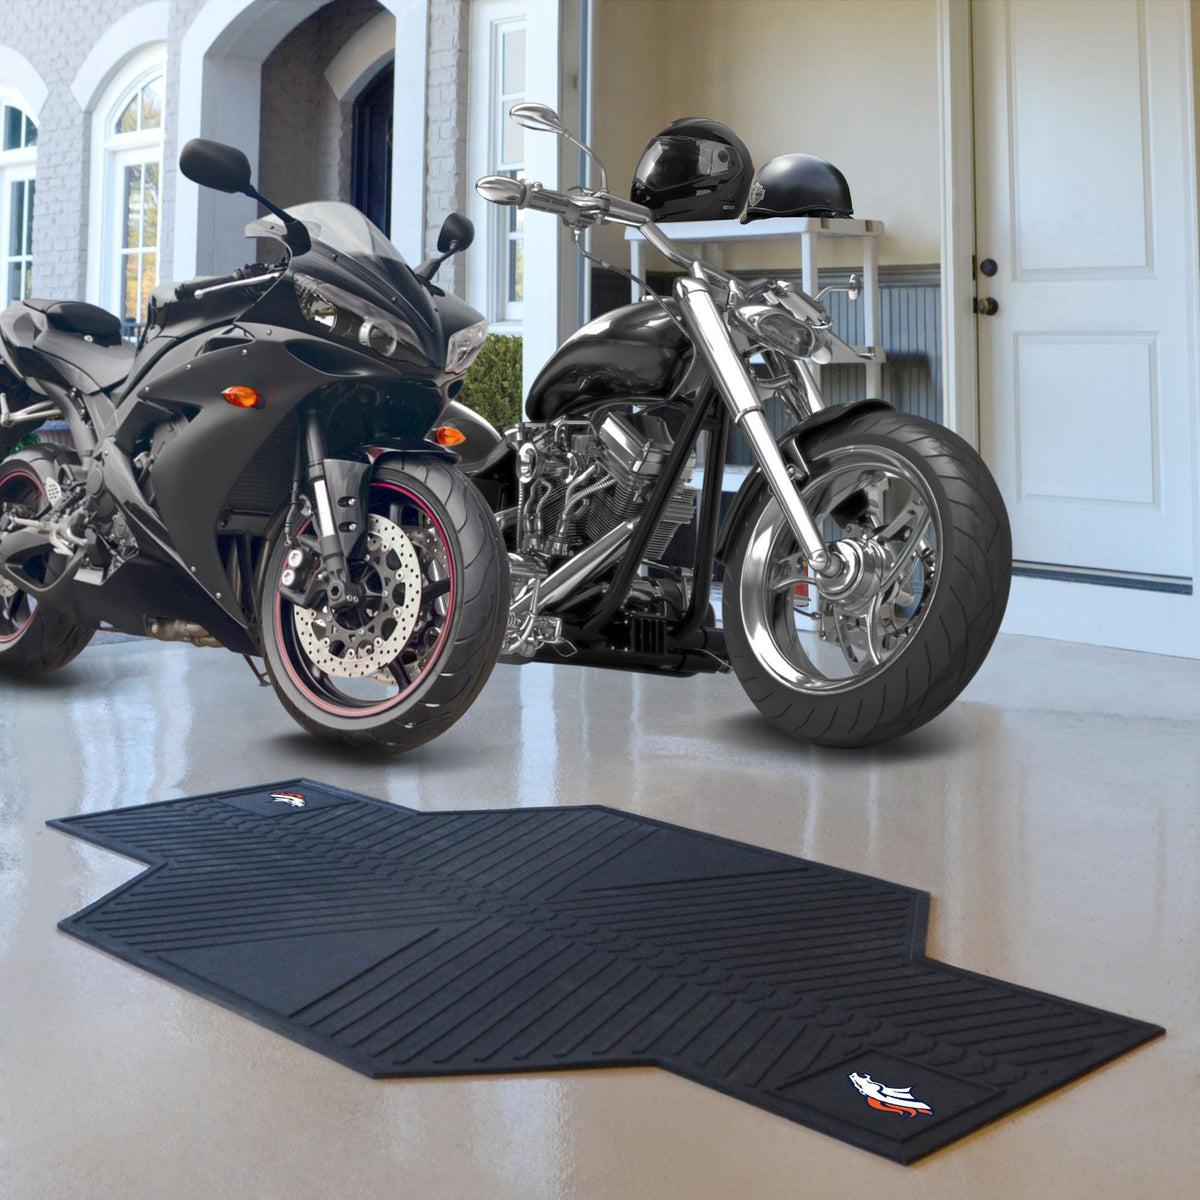 "NFL - Motorcycle Mat, 82.5"" x 42"" NFL Mats, Motorcycle Accessory, Motorcycle Mat, NFL, Auto Fan Mats Denver Broncos"